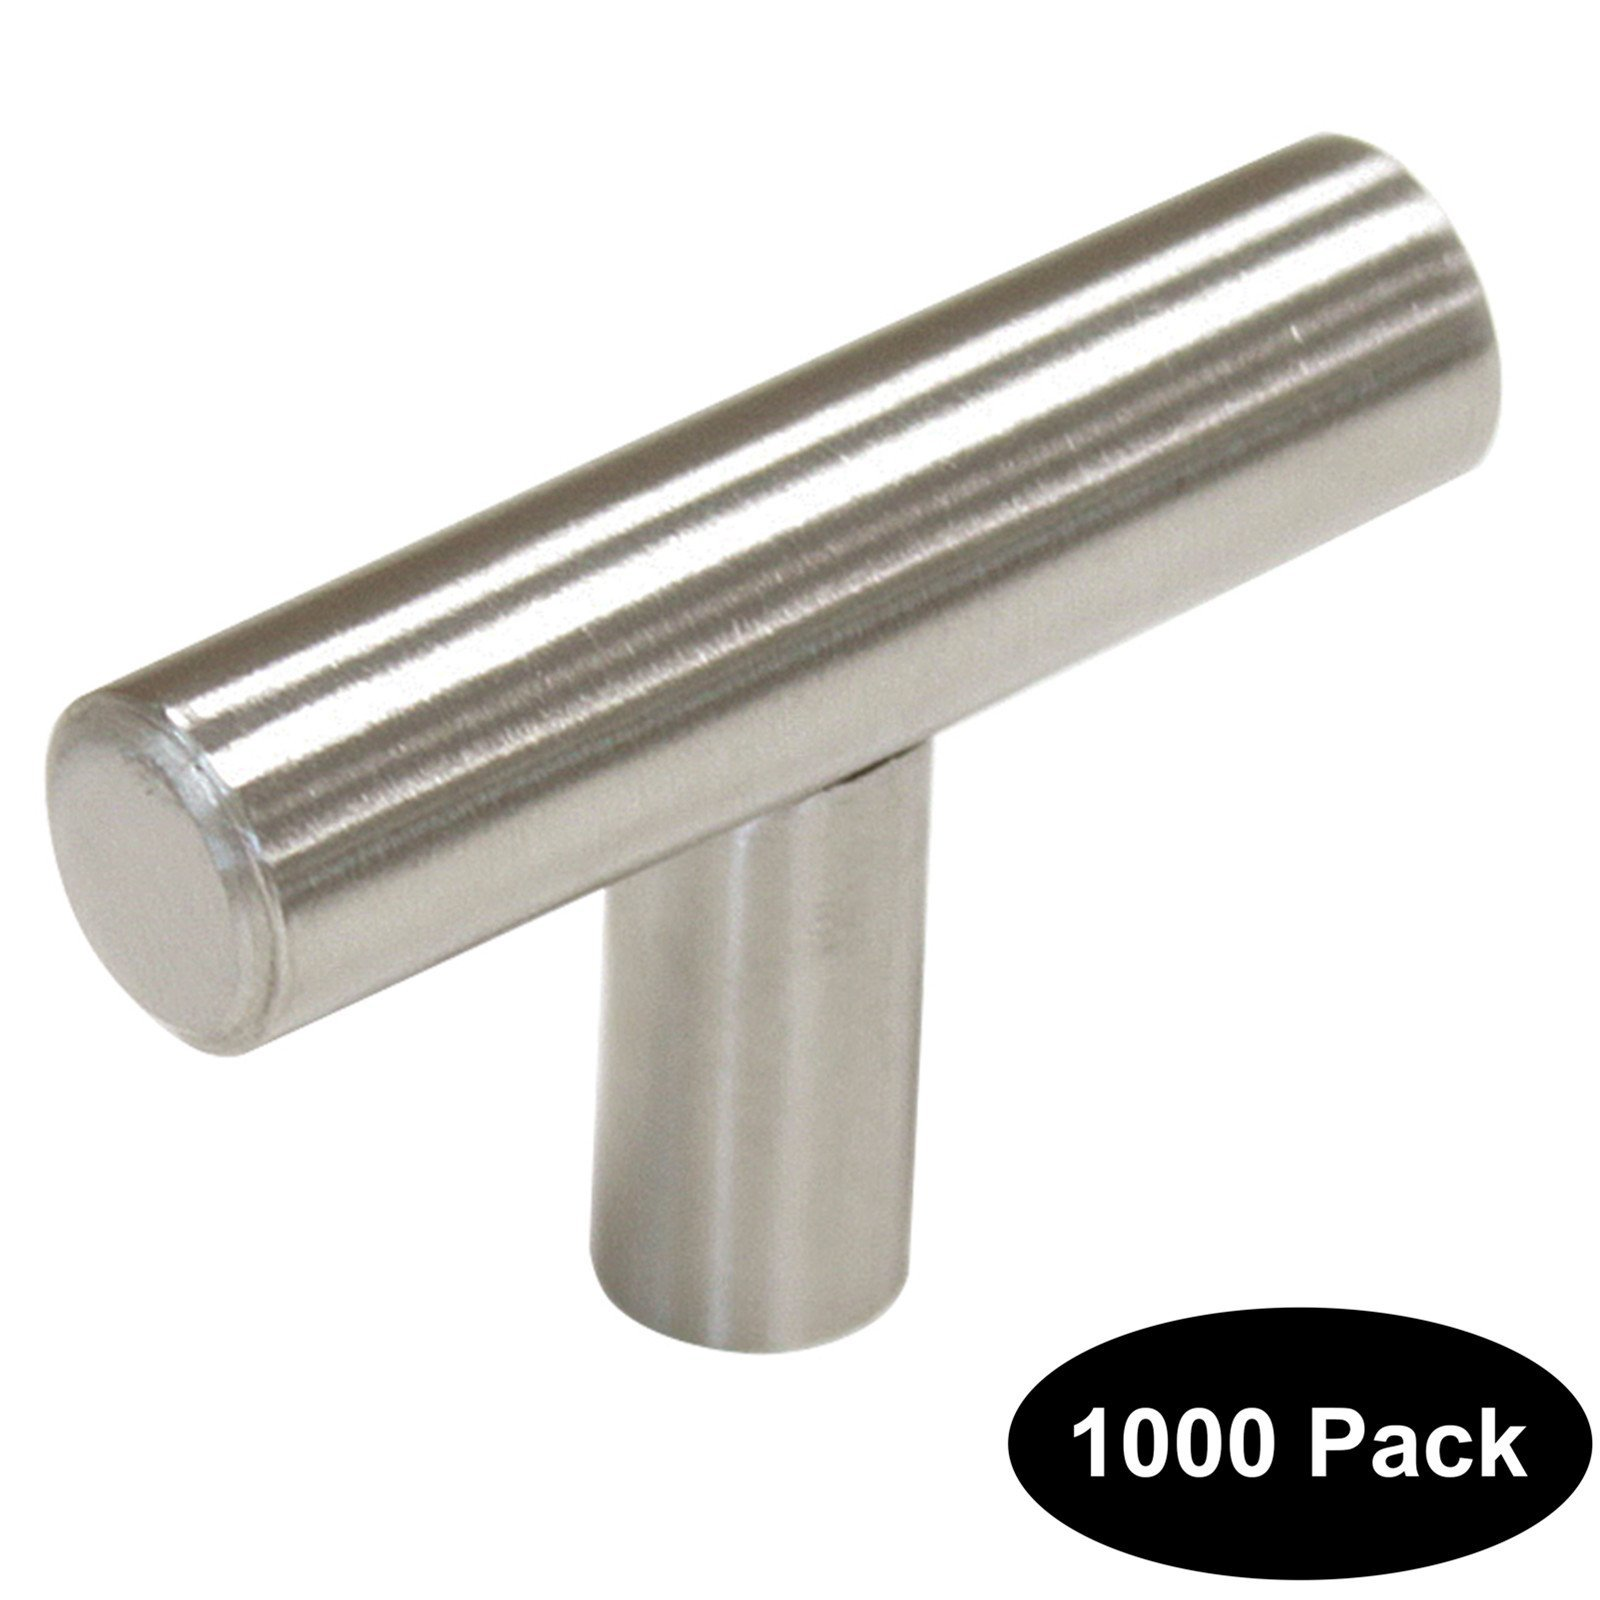 1000 pack 2 inch Length Stainless Steel Kitchen Cabinet Door Handles and Pulls Single Hole Cabinet Knobs 50mm Brushed Nickel